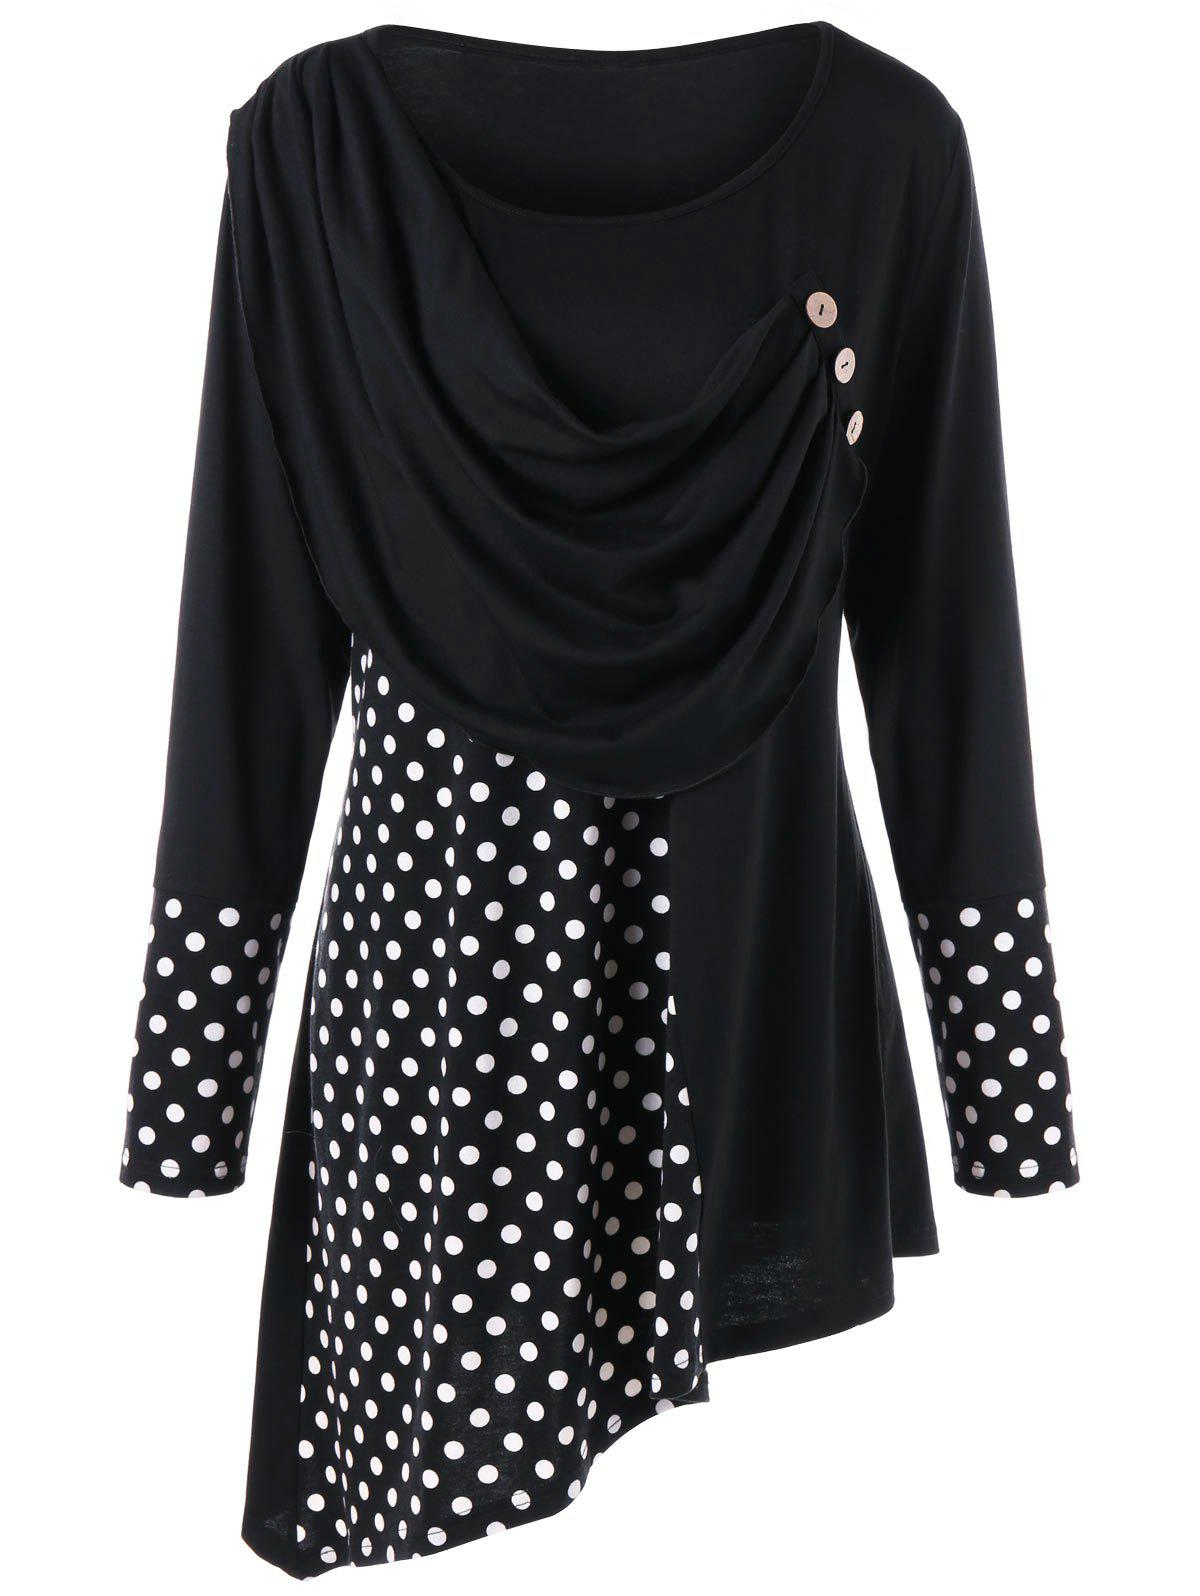 Plus Size Polka Dot Ruched Asymmetric Top ruched asymmetric surplice top